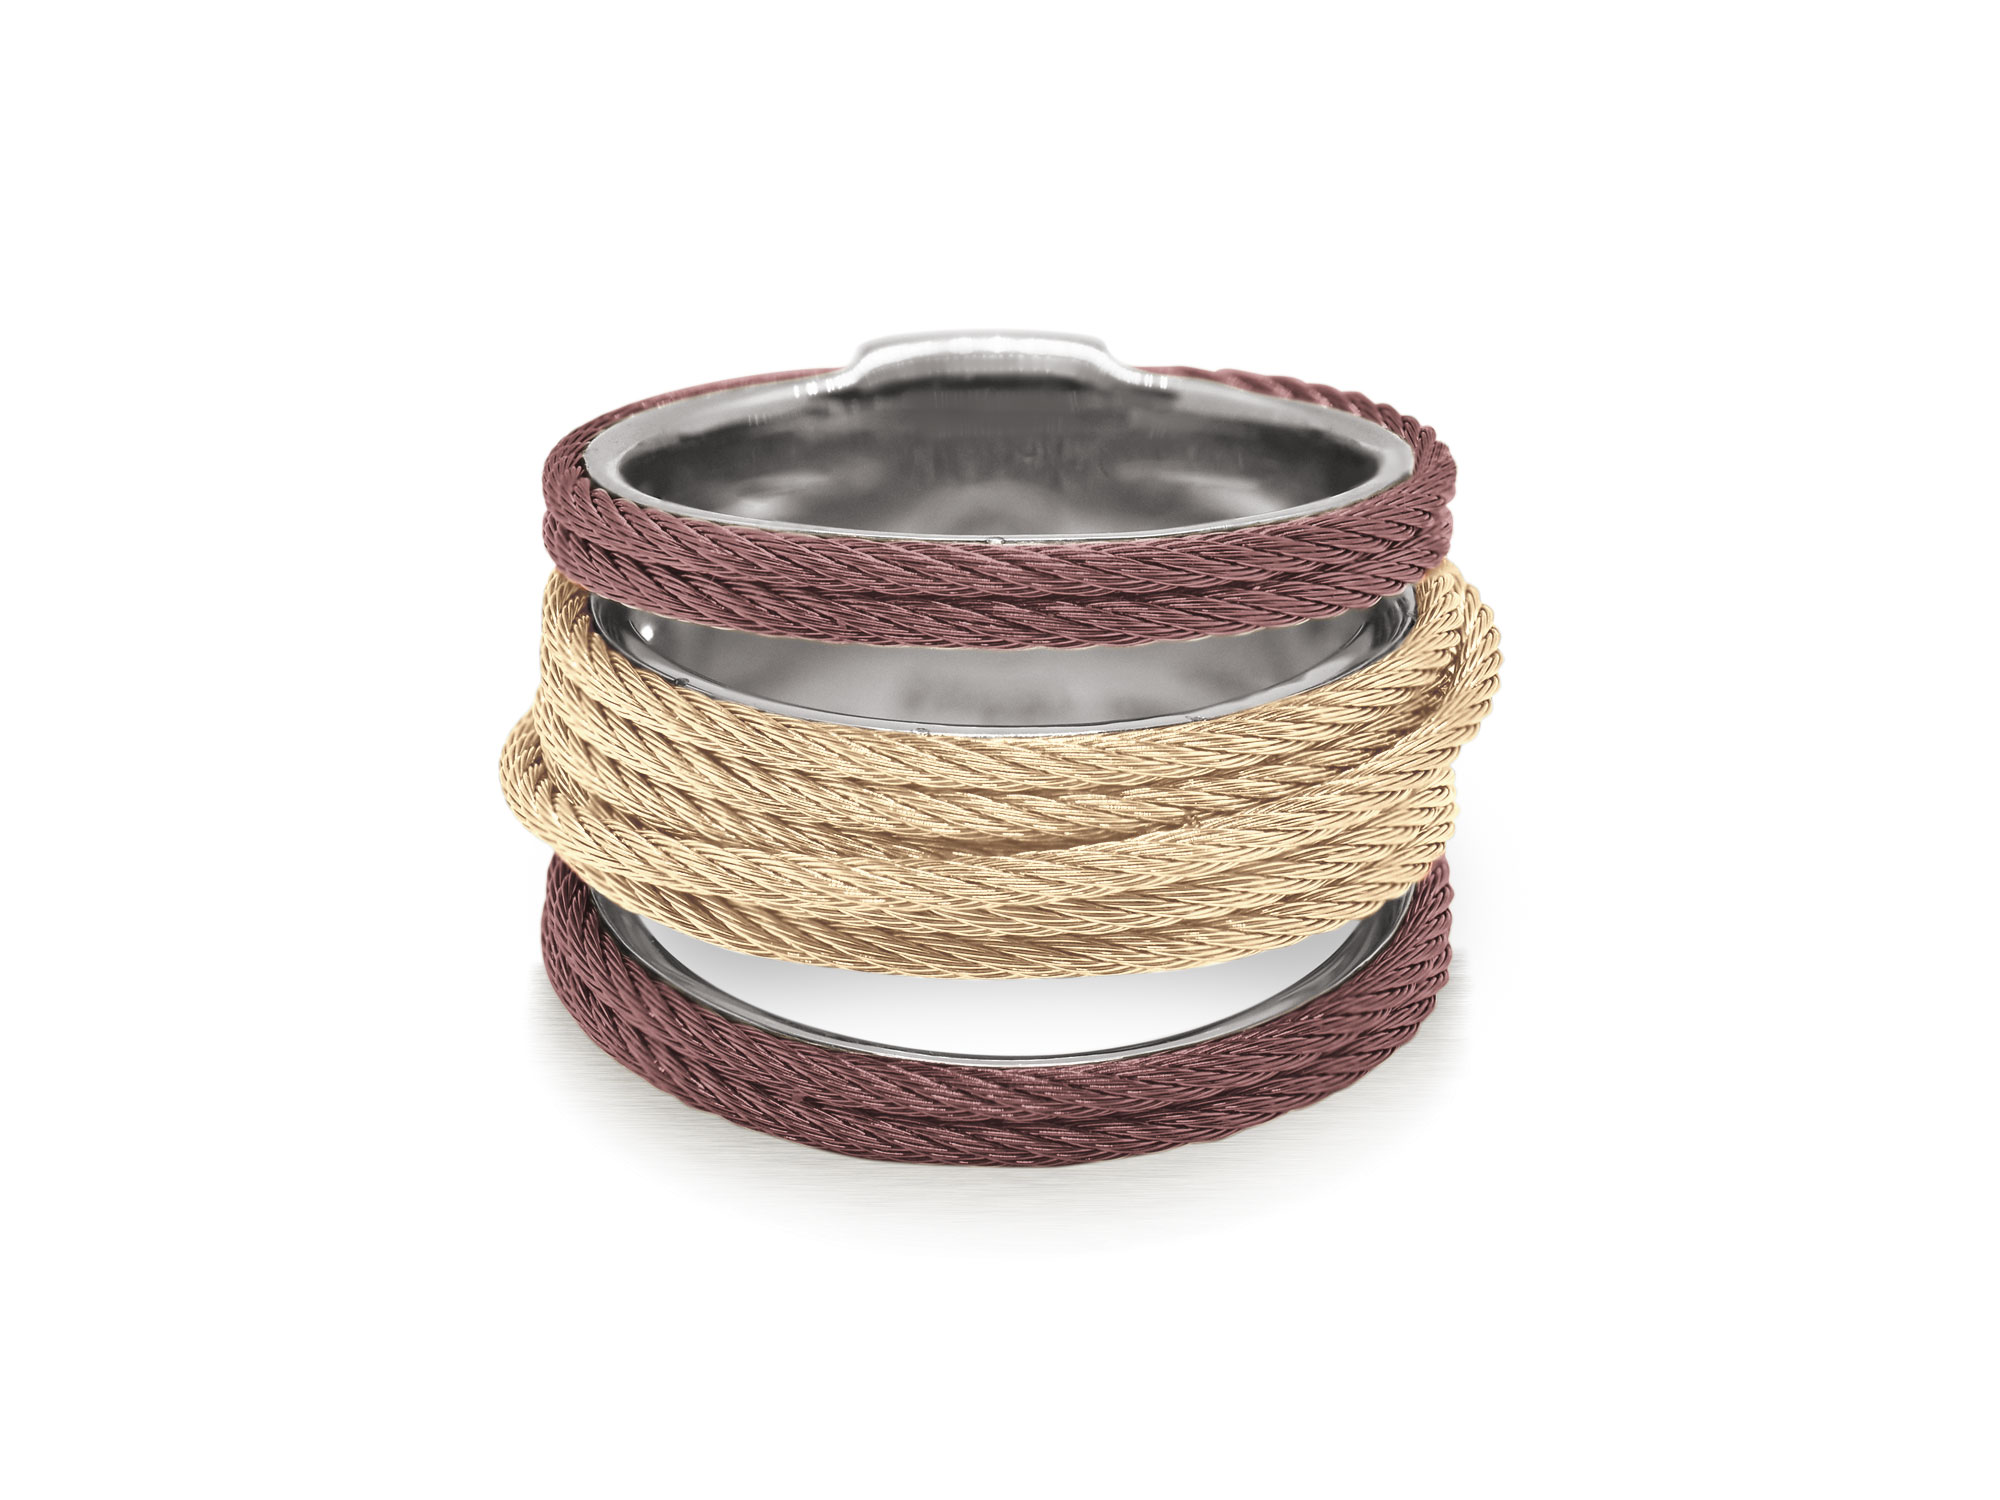 Carnation and burgundy cable with stainless steel. Imported. SKU: 02-29-S423-00